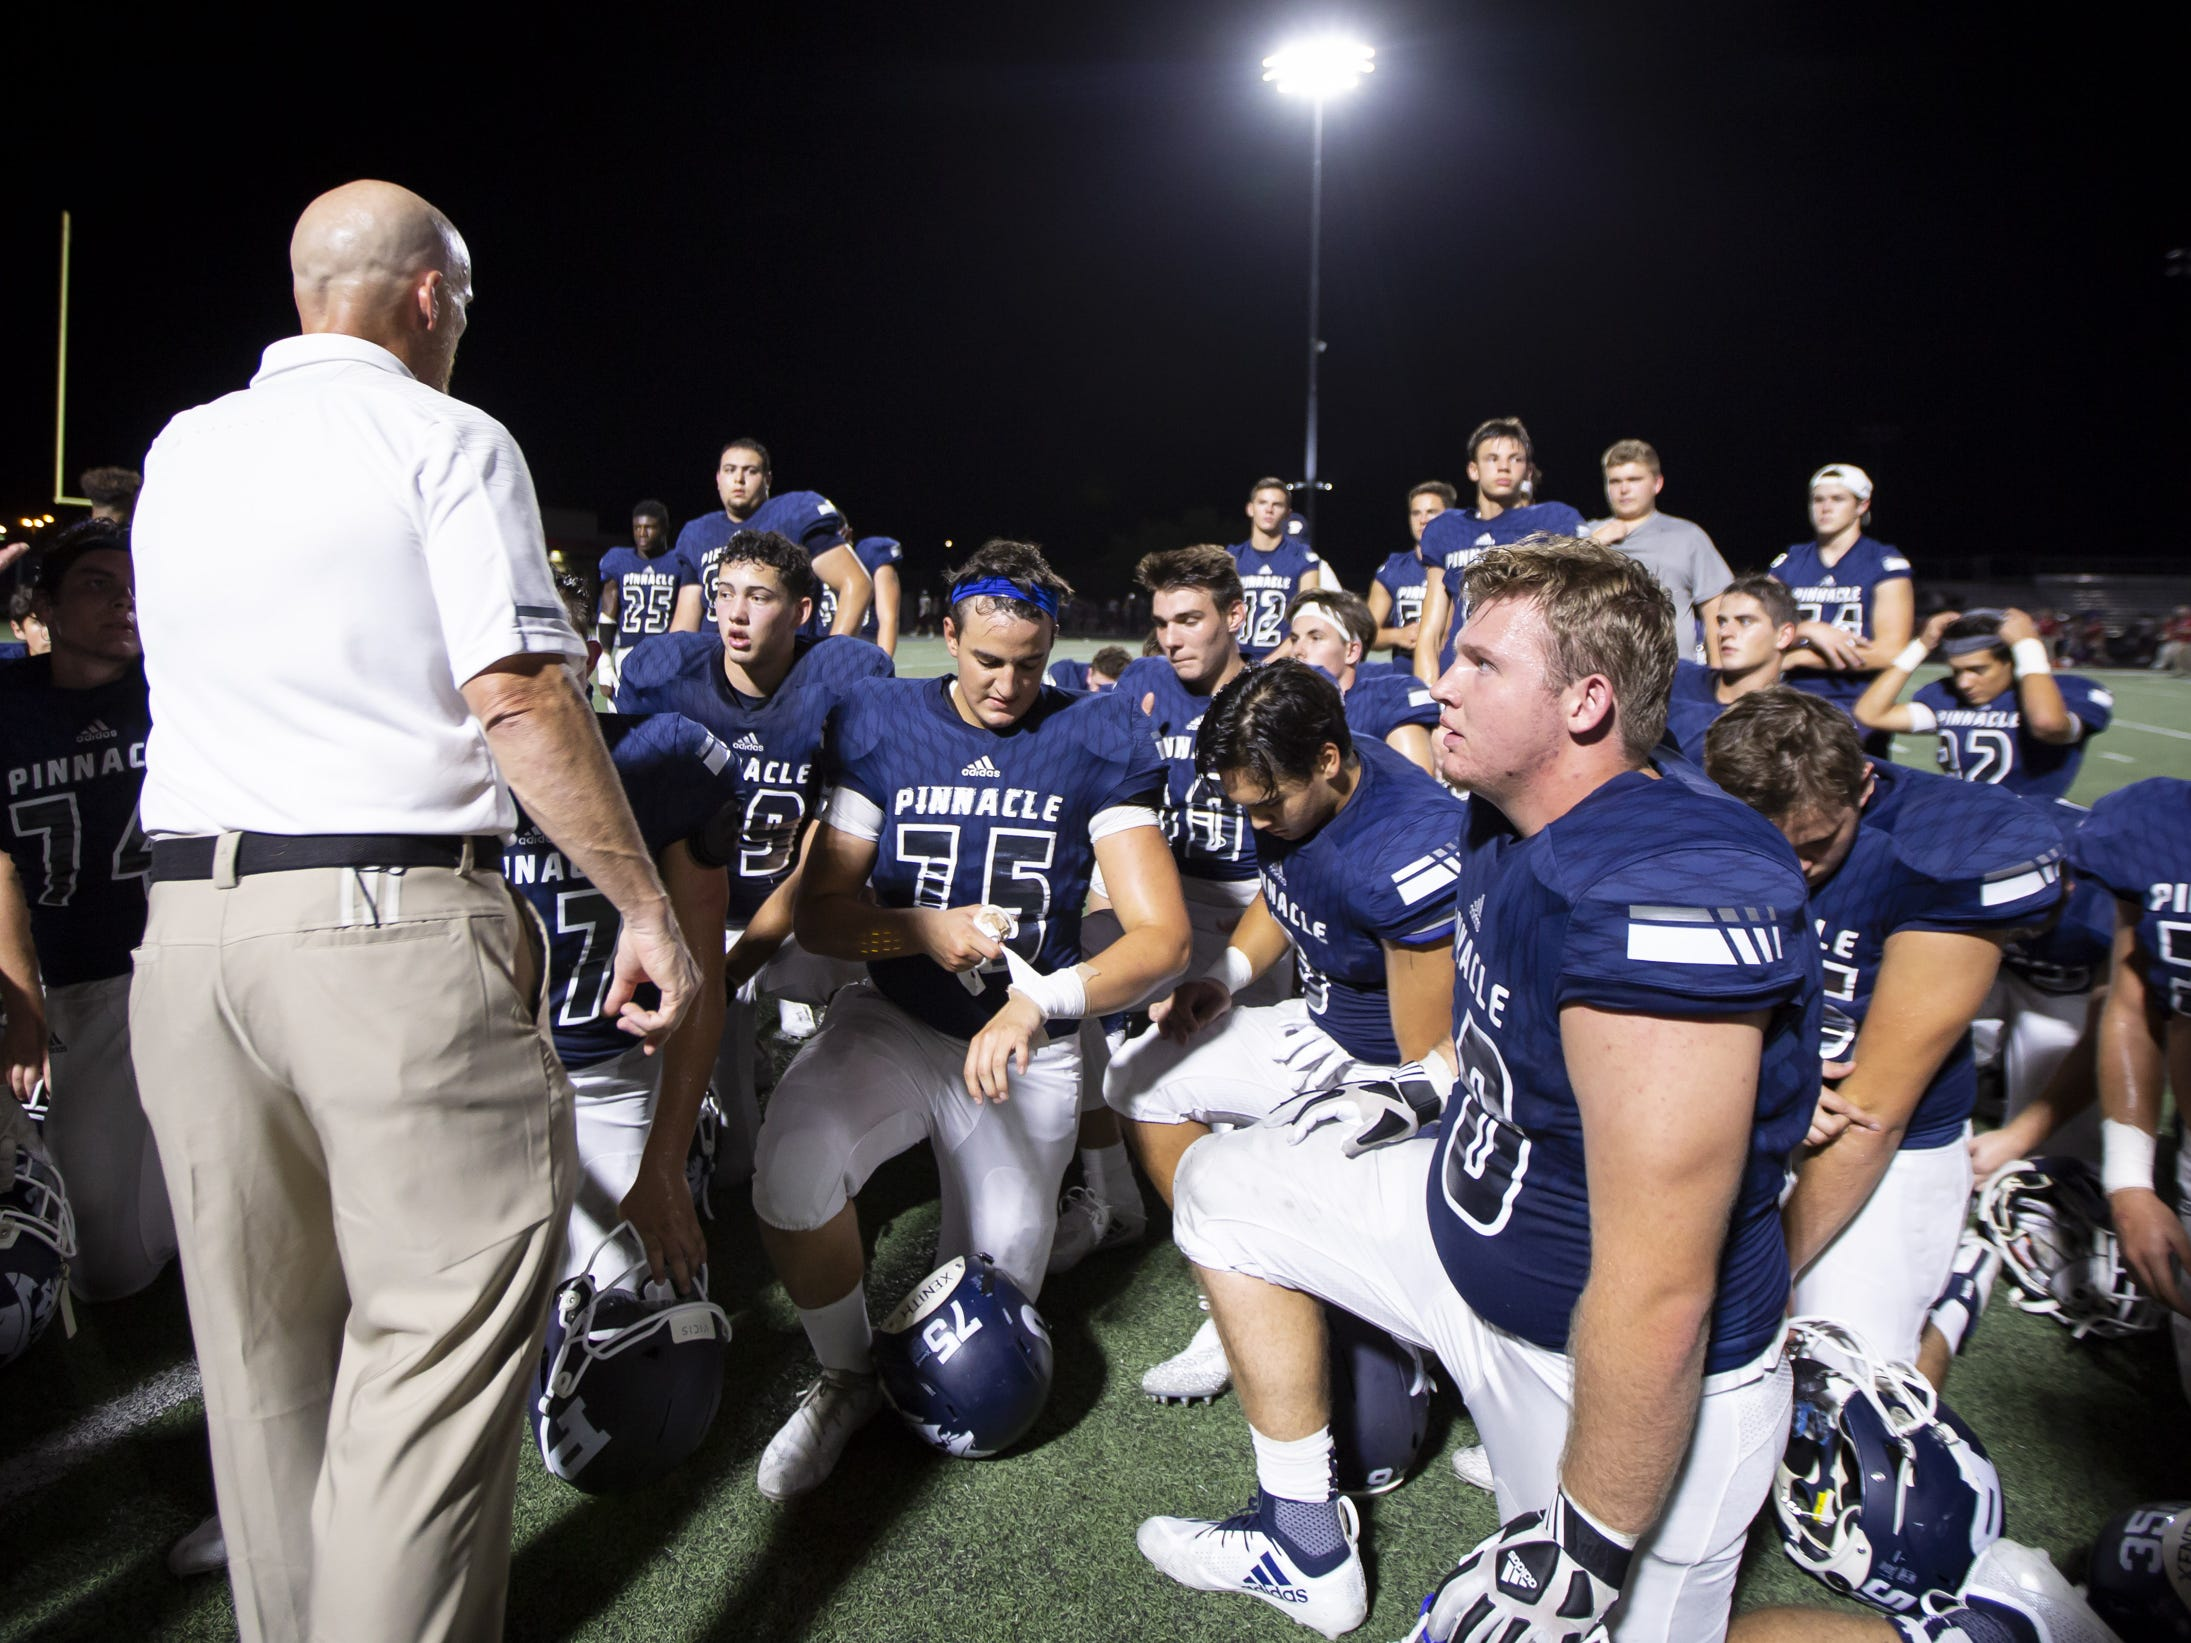 Head coach Dana Zupke of the Pinnacle Pioneers speaks following Pinnacle's win against the Perry Pumas at Pinnacle High School on Friday, August 17, 2018 in Phoenix, Arizona.